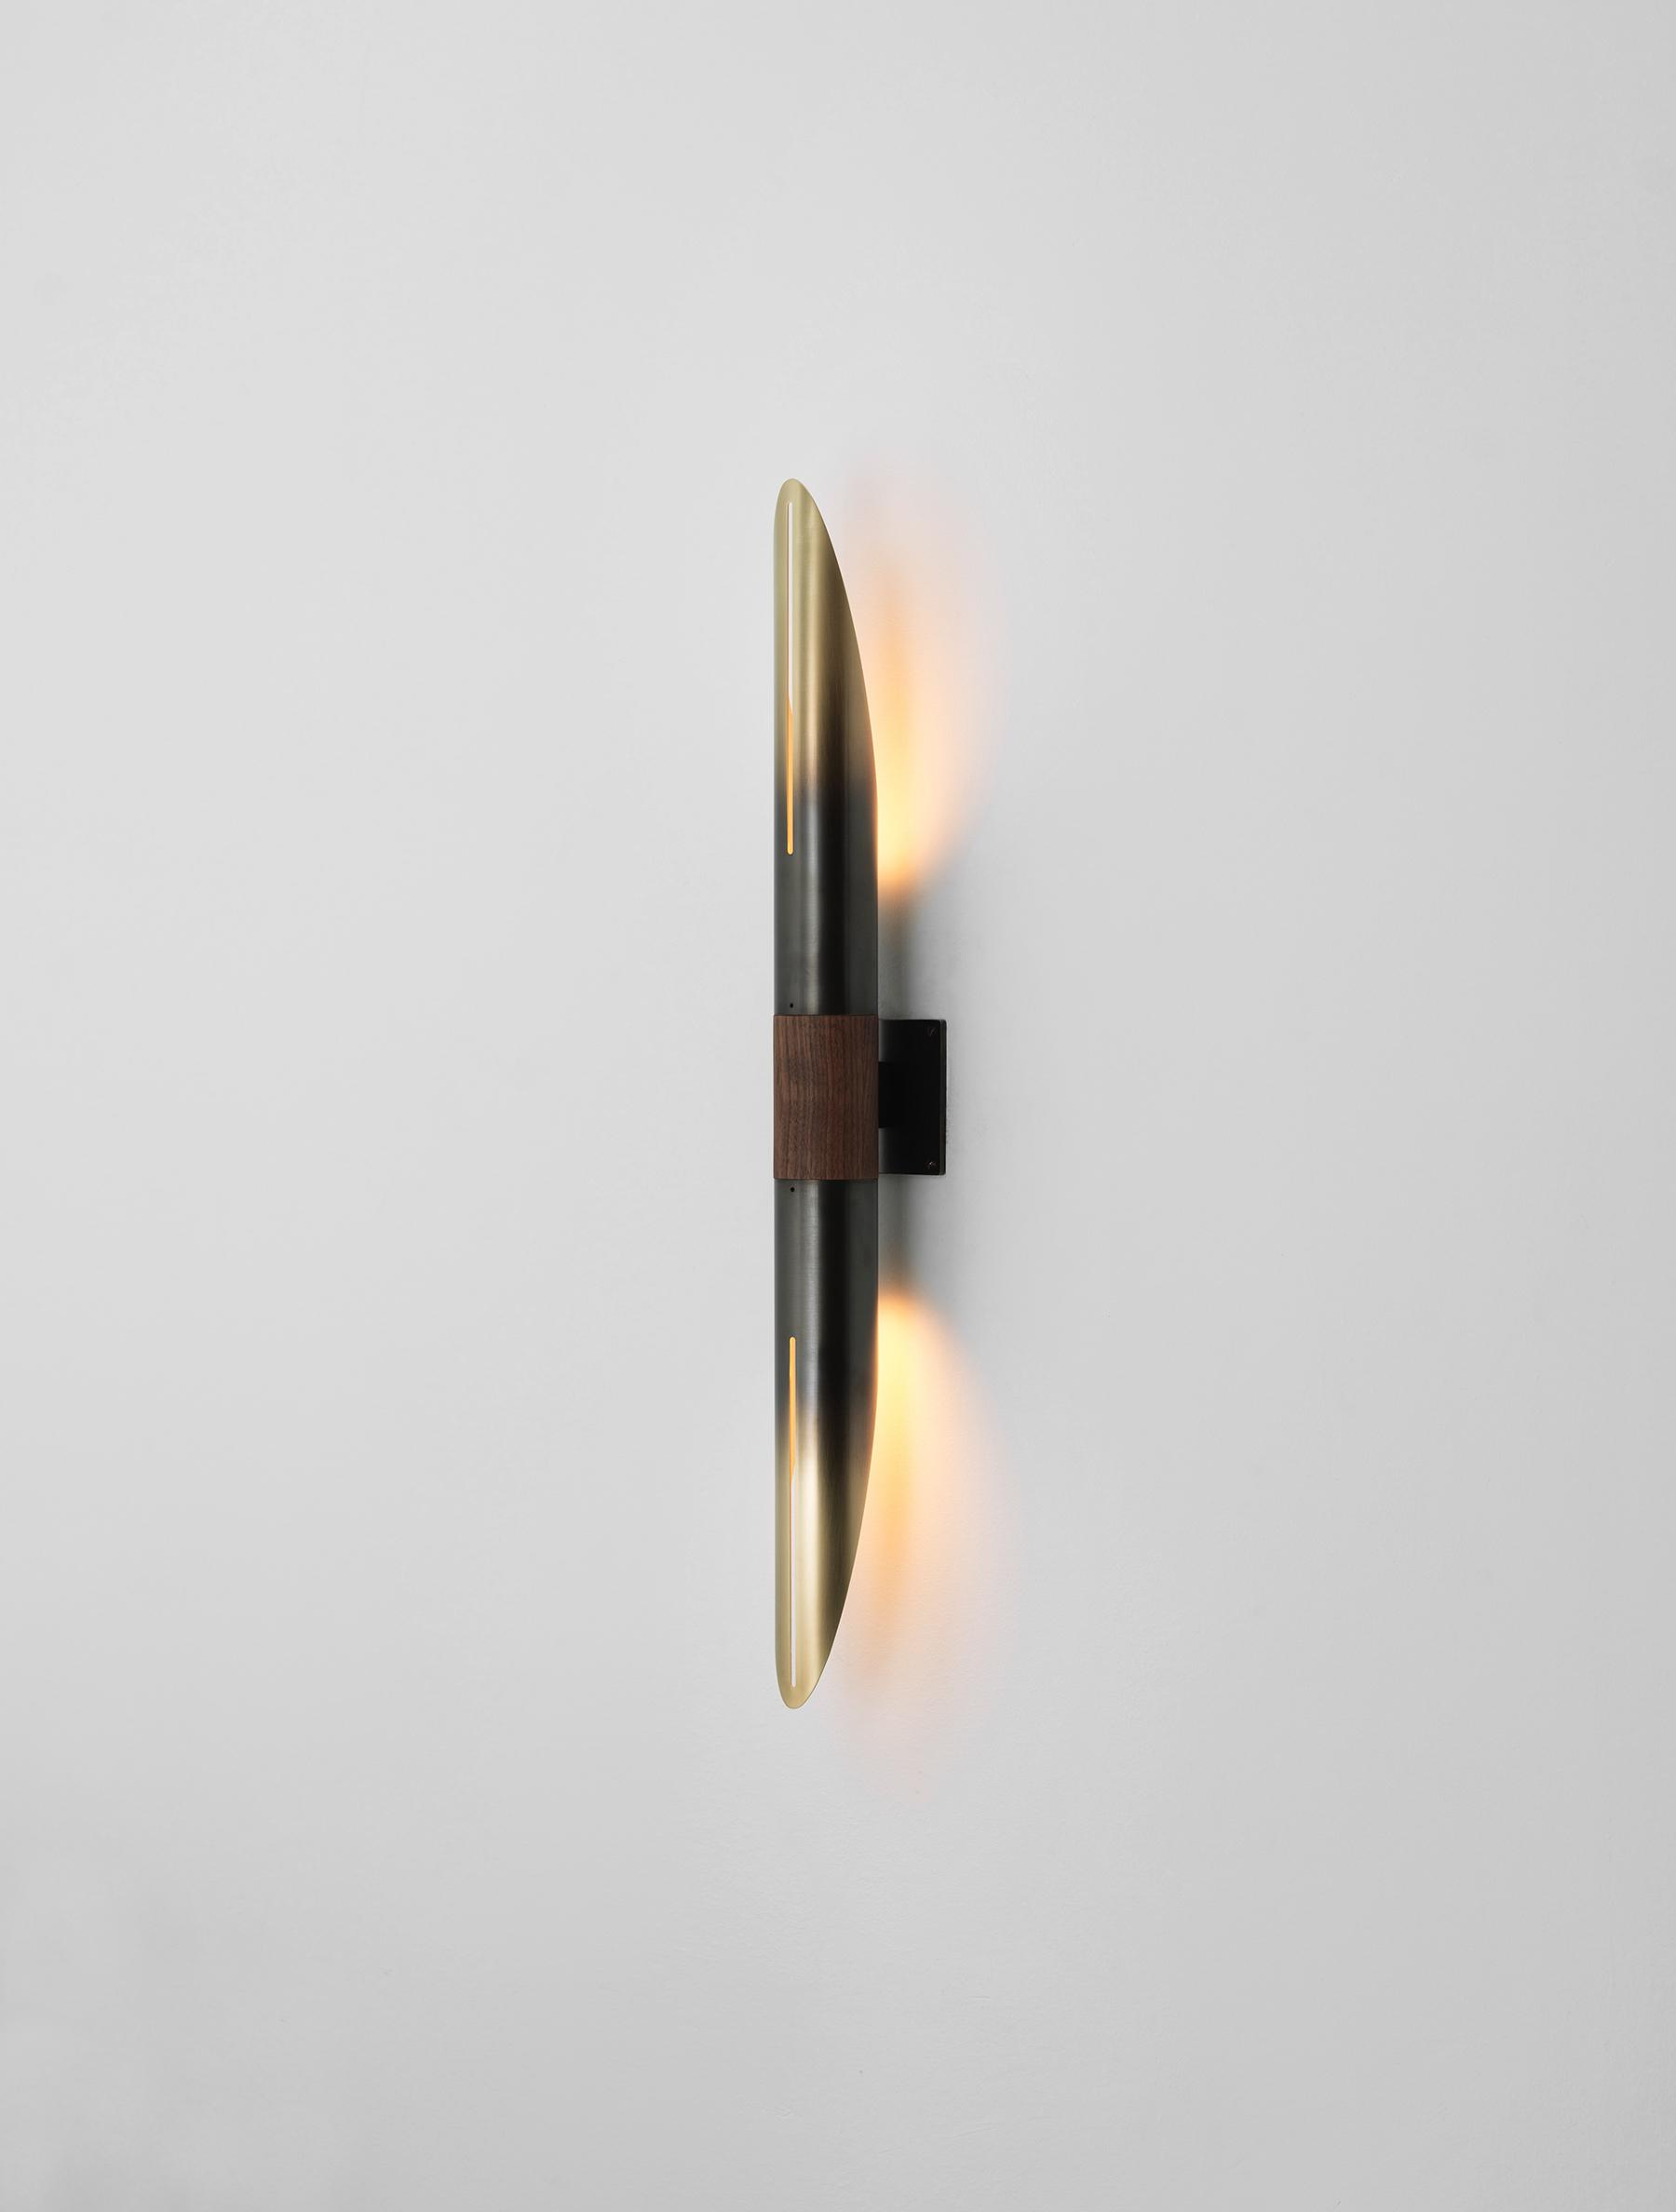 "Voyager 33"" Sconce shown in Gradient, Black Walnut"